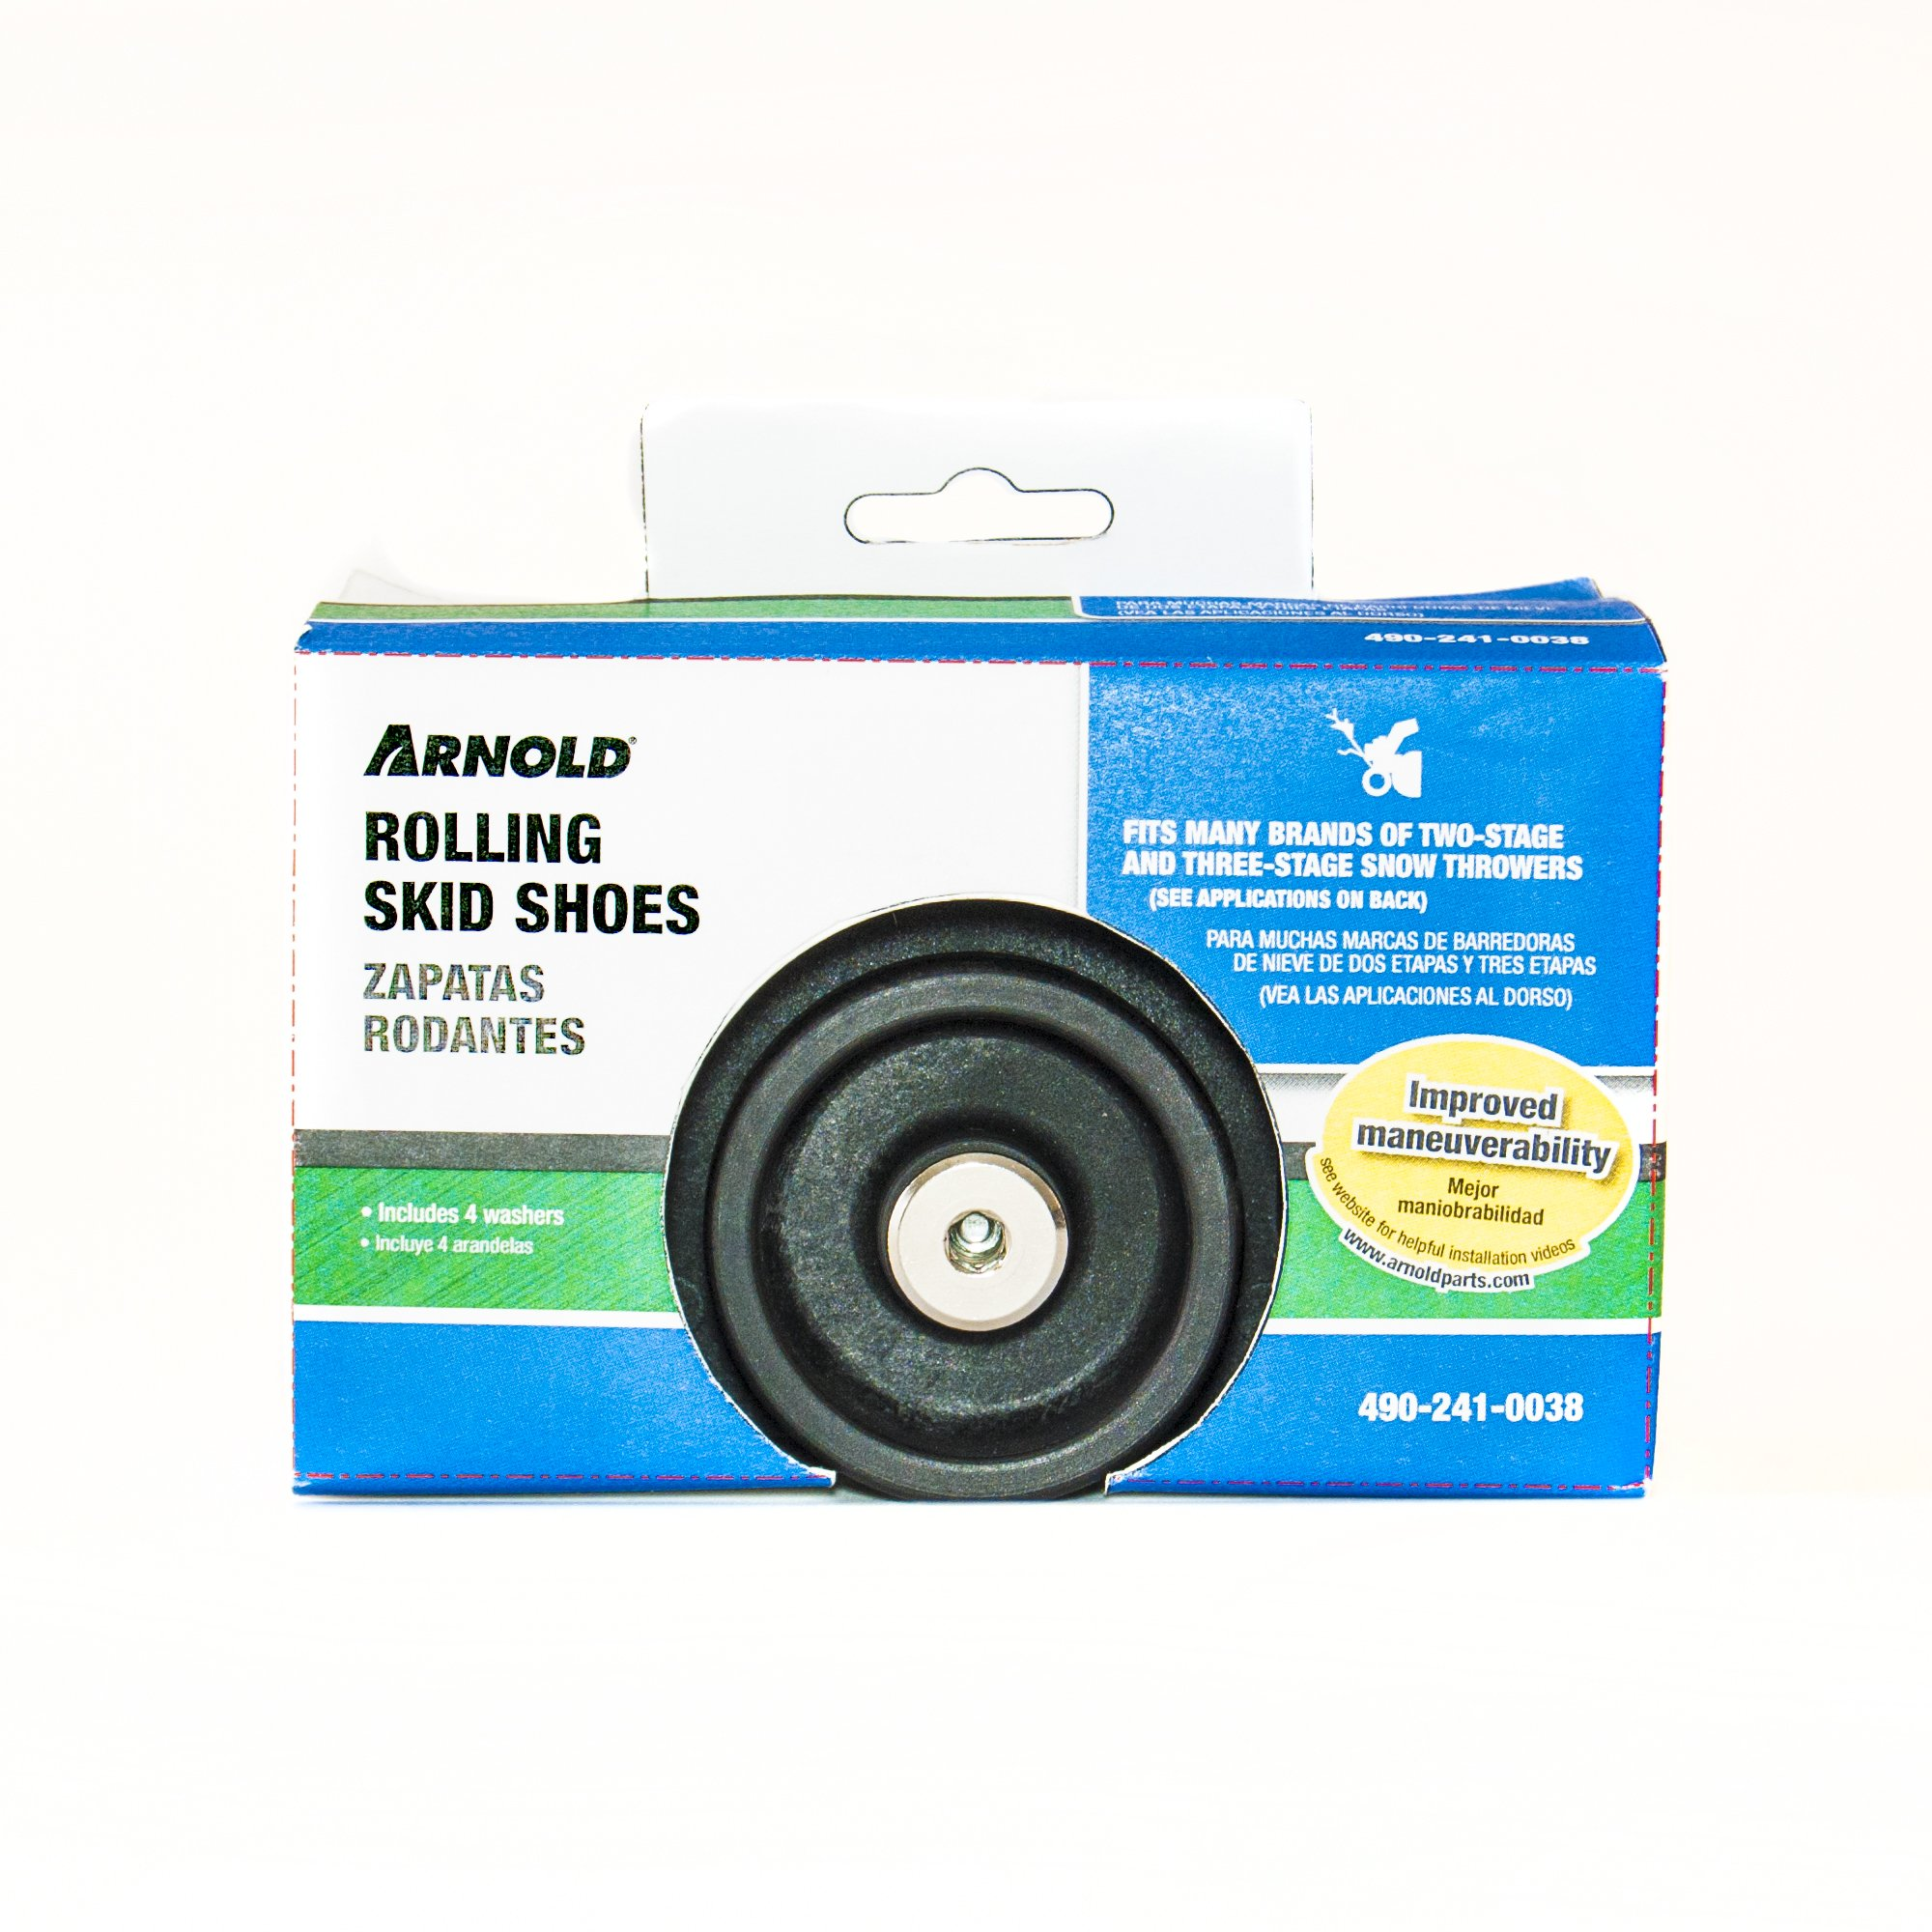 Arnold Universal Roller Skid Snow Thrower Shoes by Arnold (Image #5)